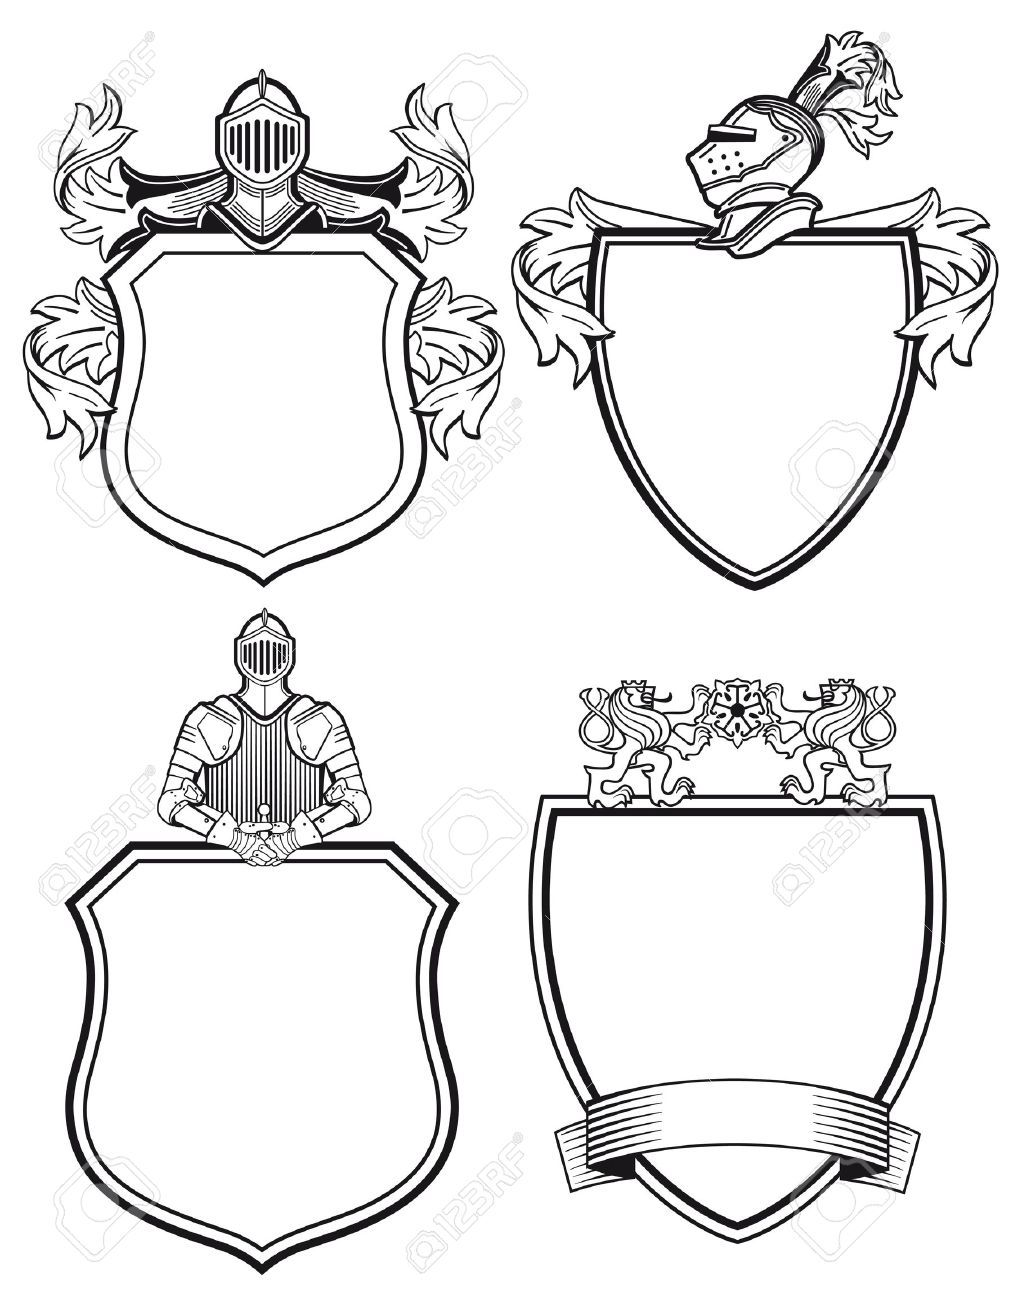 Knights shield border clipart black and white graphic free download Stock Vector | OZ tattoo | Coat of arms, Shield tattoo ... graphic free download